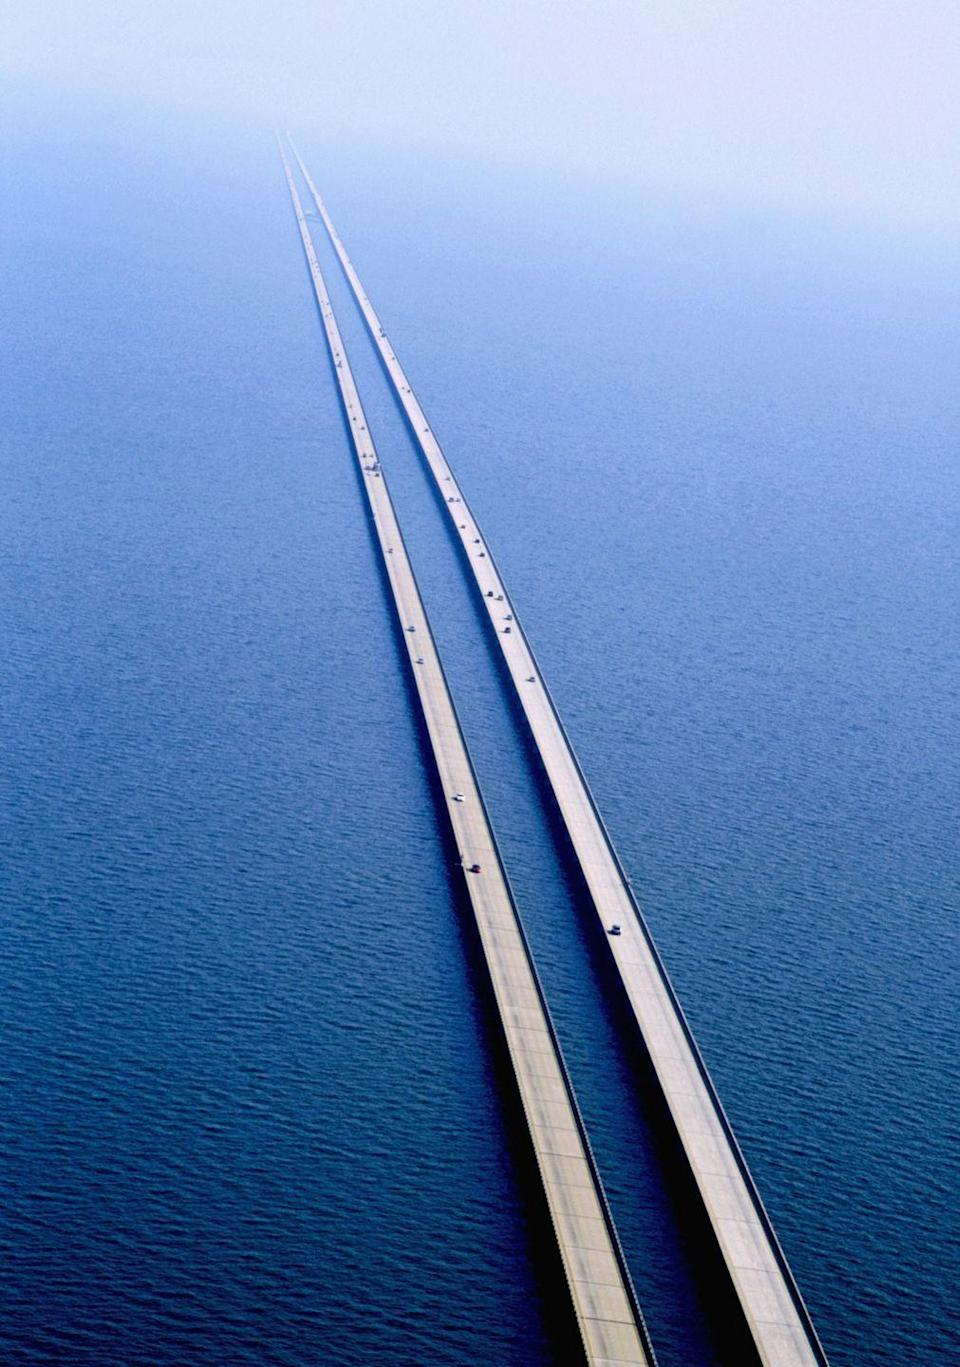 """<p> The Lake Pontchartrain Causeway bridge in New Orleans, Louisiana is the <a href=""""https://www.atlasobscura.com/places/lake-pontchartrain-causeway"""" rel=""""nofollow noopener"""" target=""""_blank"""" data-ylk=""""slk:longest continuous bridge"""" class=""""link rapid-noclick-resp"""">longest continuous bridge</a> passing over water. It's nearly 24 miles long (and for eight of those miles, you can't even see any land at all).  </p><p><strong>RELATED:</strong> <a href=""""https://www.goodhousekeeping.com/life/travel/g2425/beautiful-photos-america/"""" rel=""""nofollow noopener"""" target=""""_blank"""" data-ylk=""""slk:51 Photos That Prove America Truly Is Beautiful"""" class=""""link rapid-noclick-resp"""">51 Photos That Prove America Truly Is Beautiful</a></p>"""